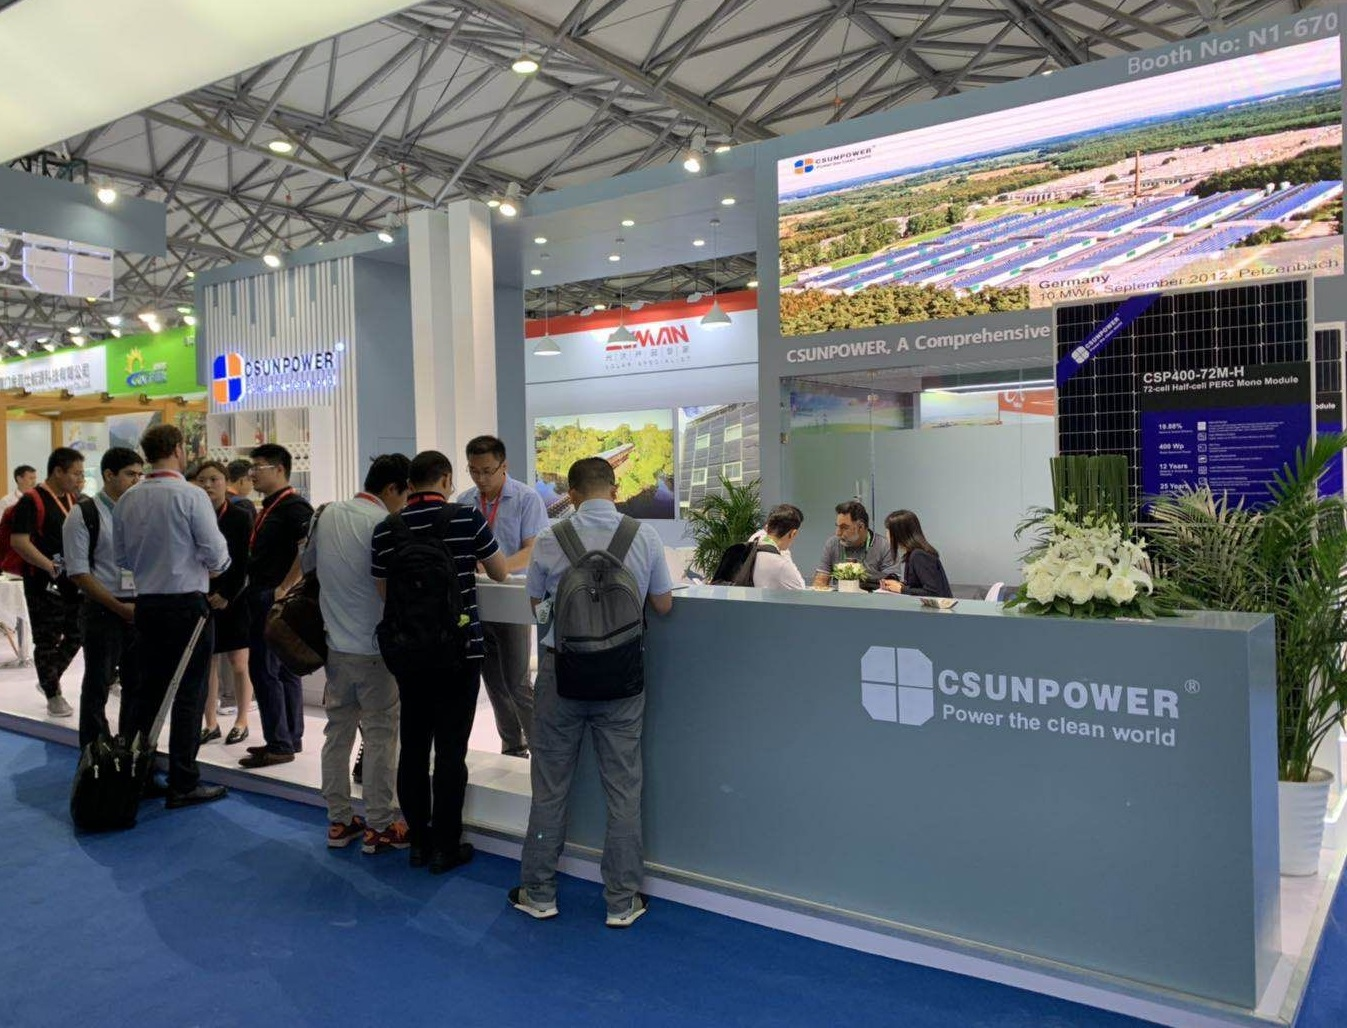 The company is hoping to use growing overseas solar markets to catalyse its own development.